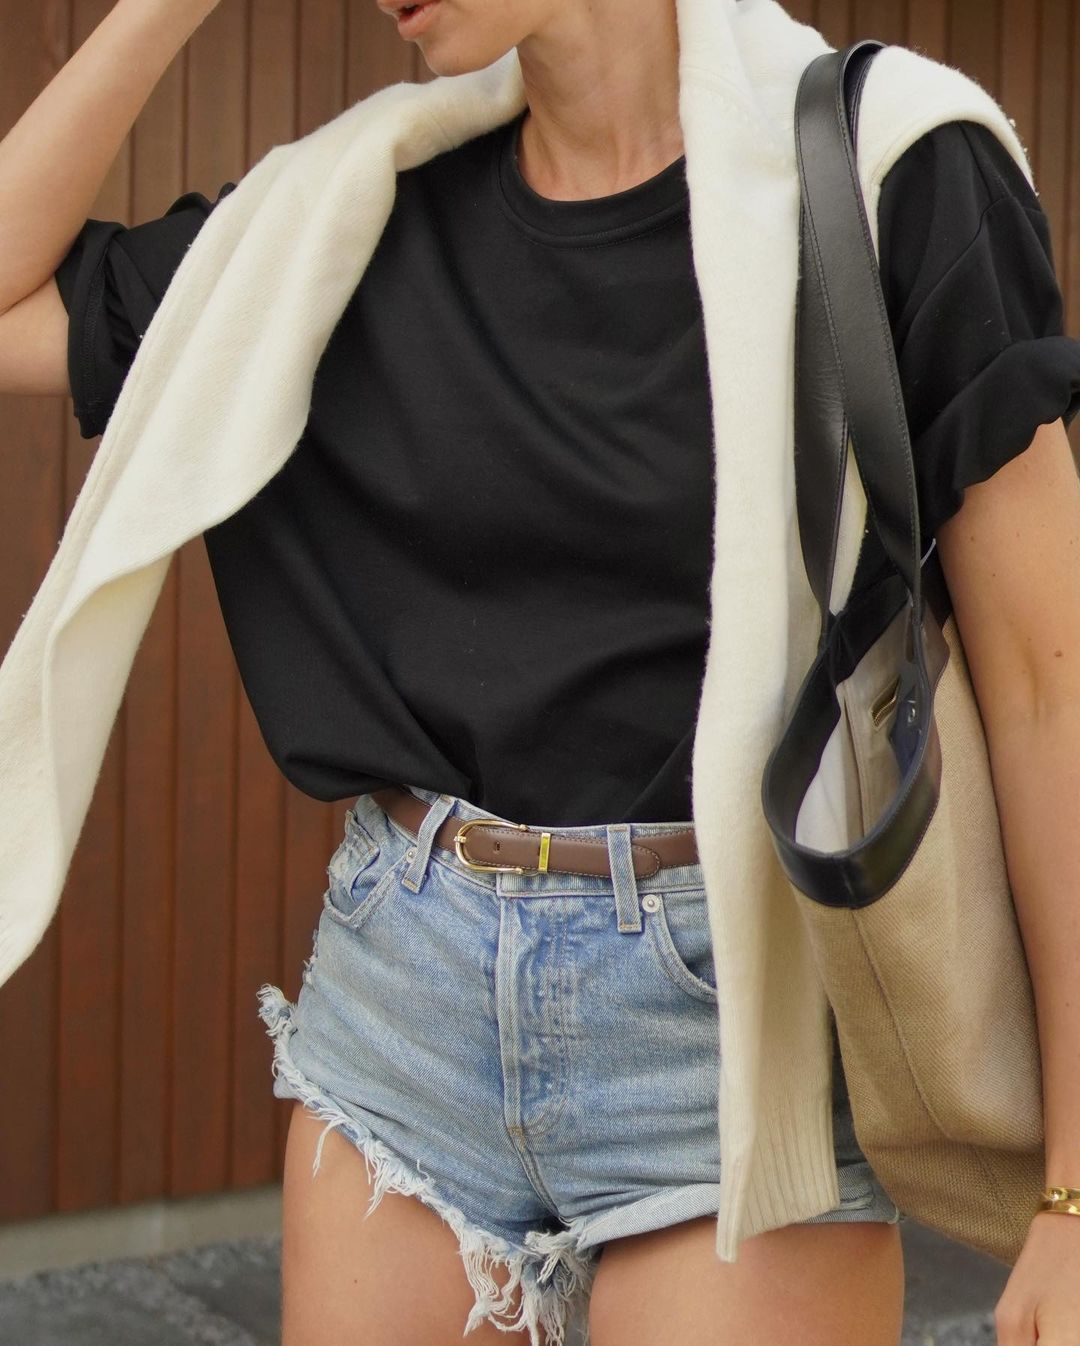 Short Denim Shorts Outfit Idea — Transitional style from Anouk Yve ina black t0shirt, cut off shorts, tote bag, thin belt and cream sweater over the shoulder